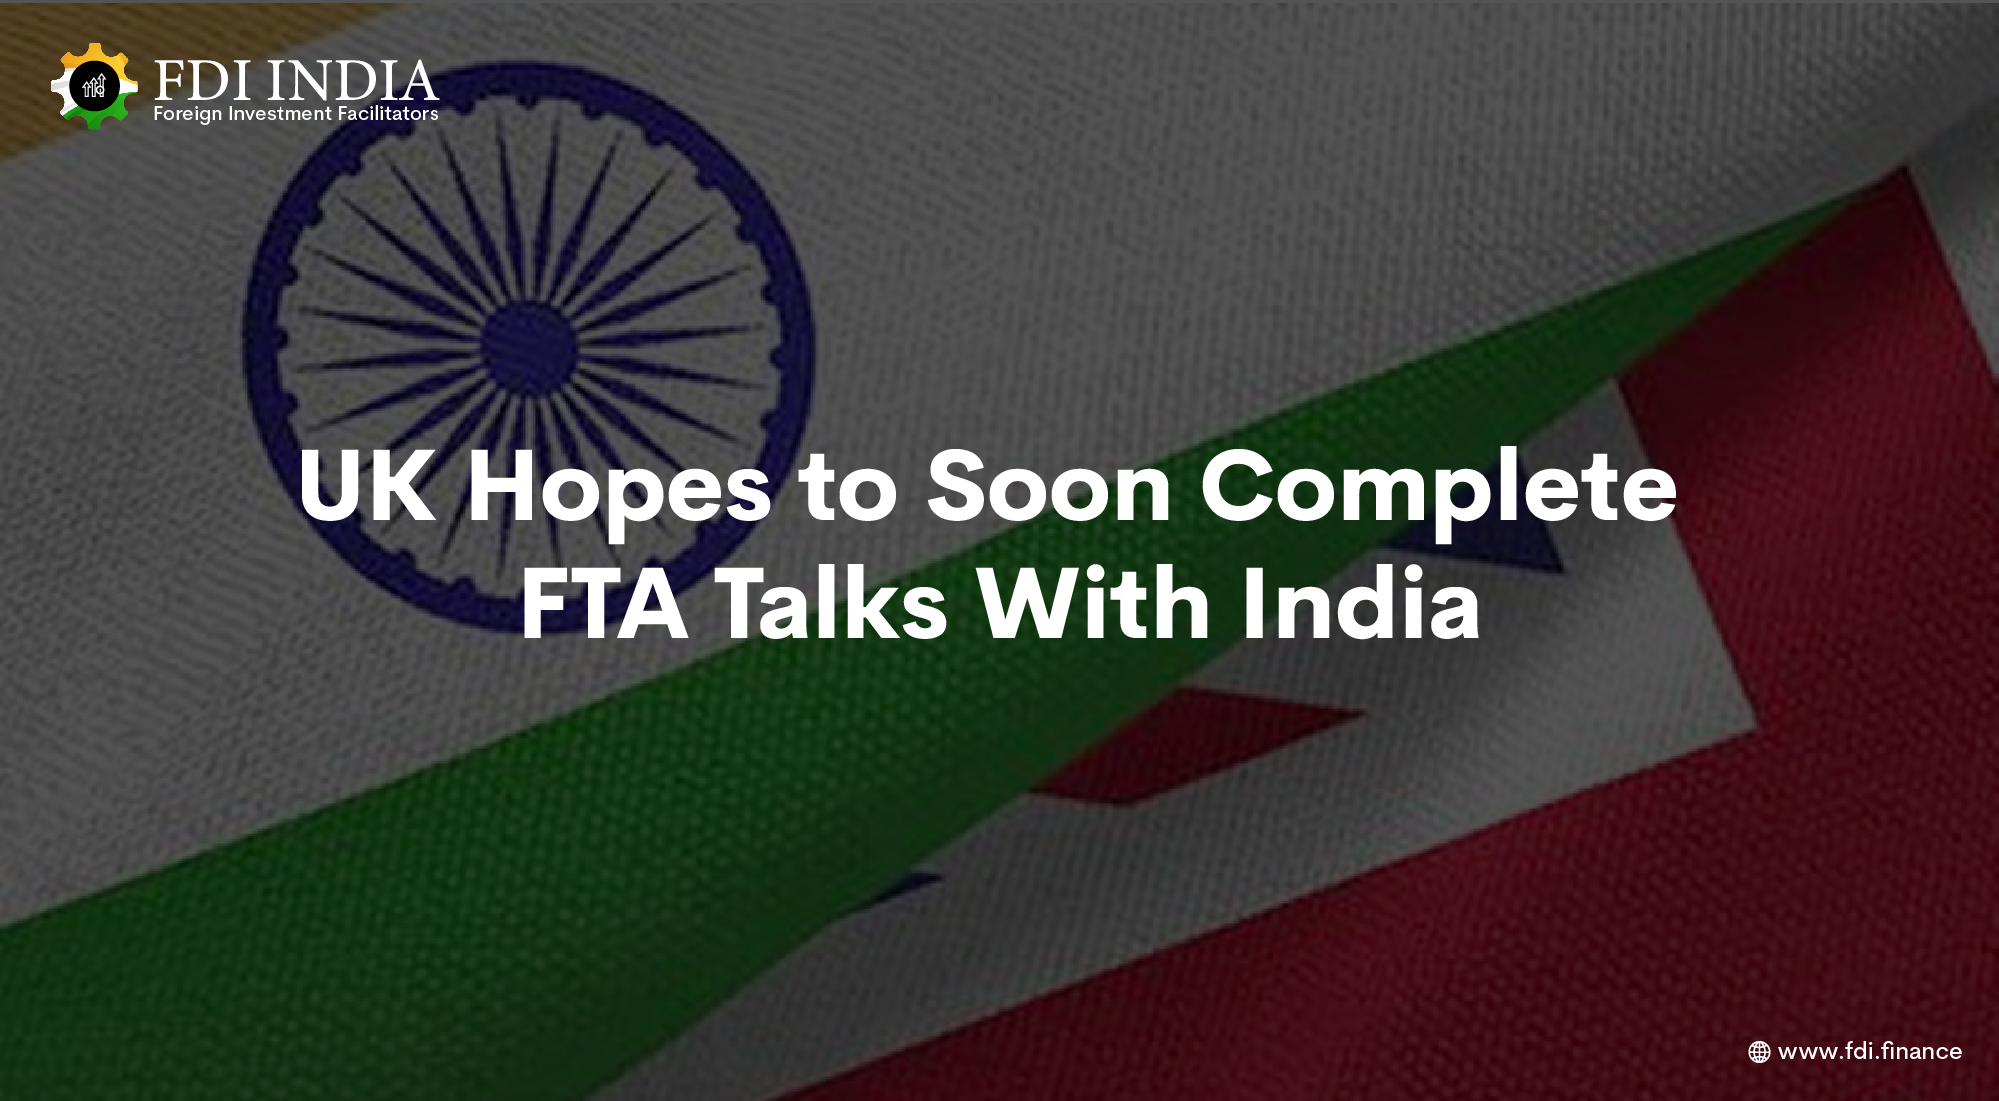 UK Hopes to Soon Complete FTA Talks With India